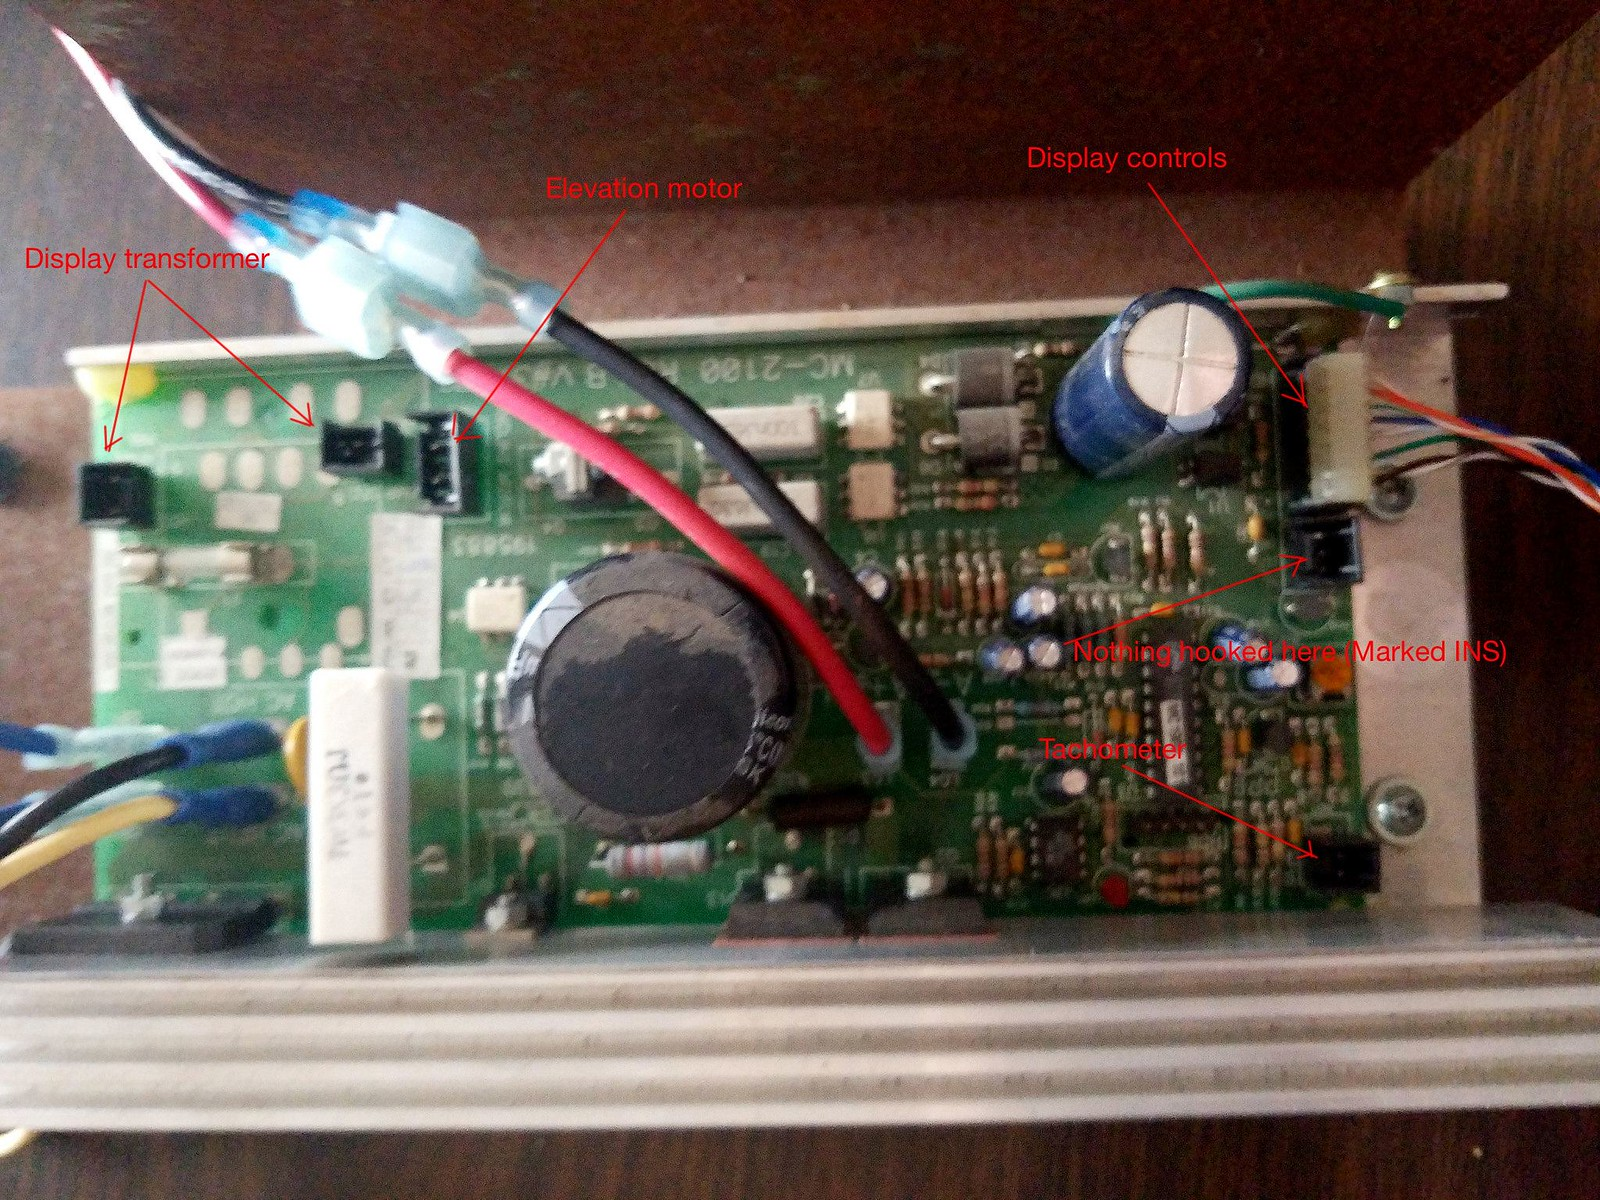 I need help with DC motor control wiring - The Garage Journal BoardThe Garage Journal